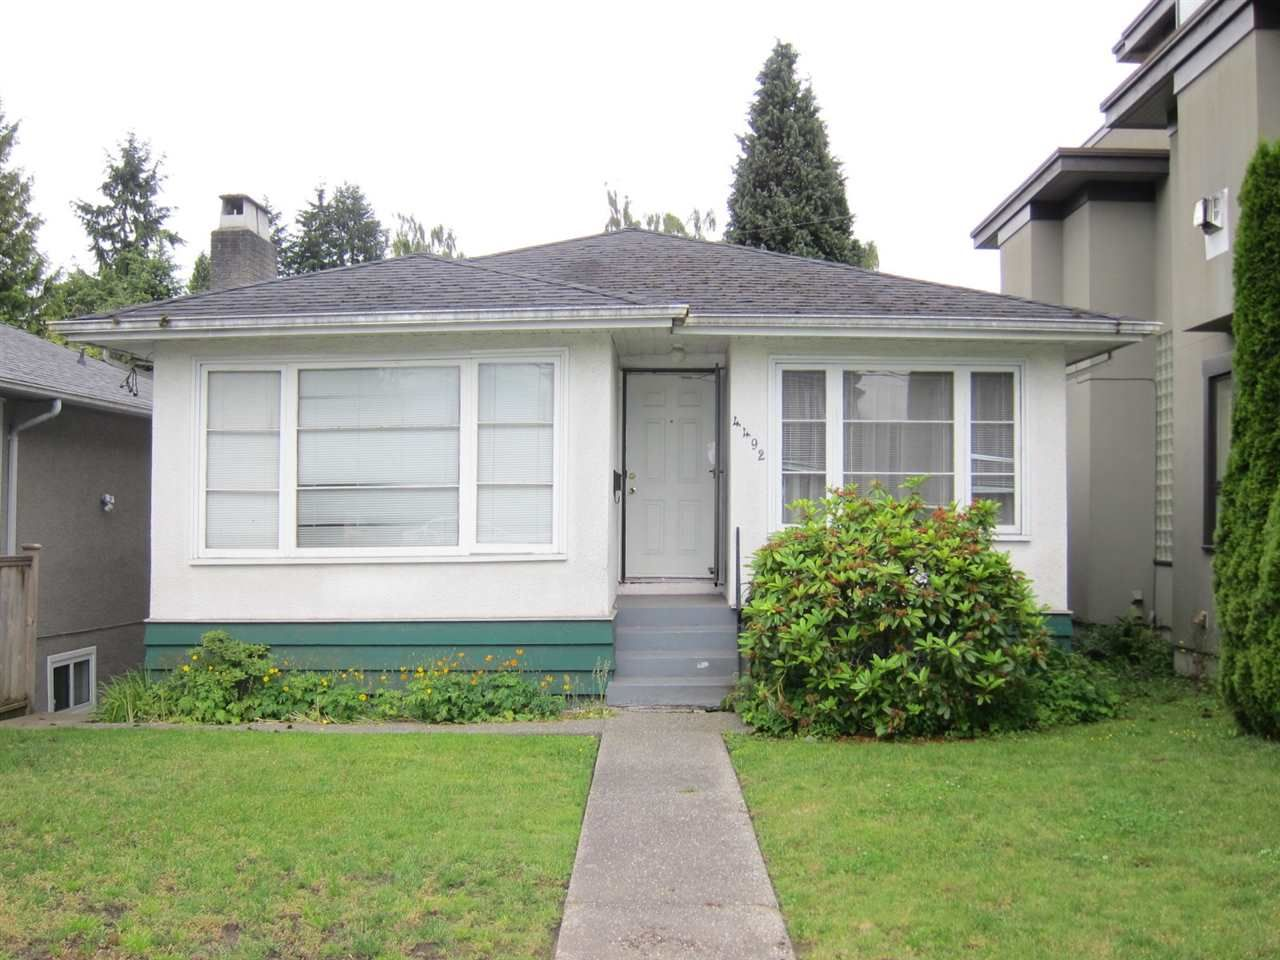 Main Photo: 4492 W 4TH Avenue in Vancouver: Point Grey House for sale (Vancouver West)  : MLS®# R2120156